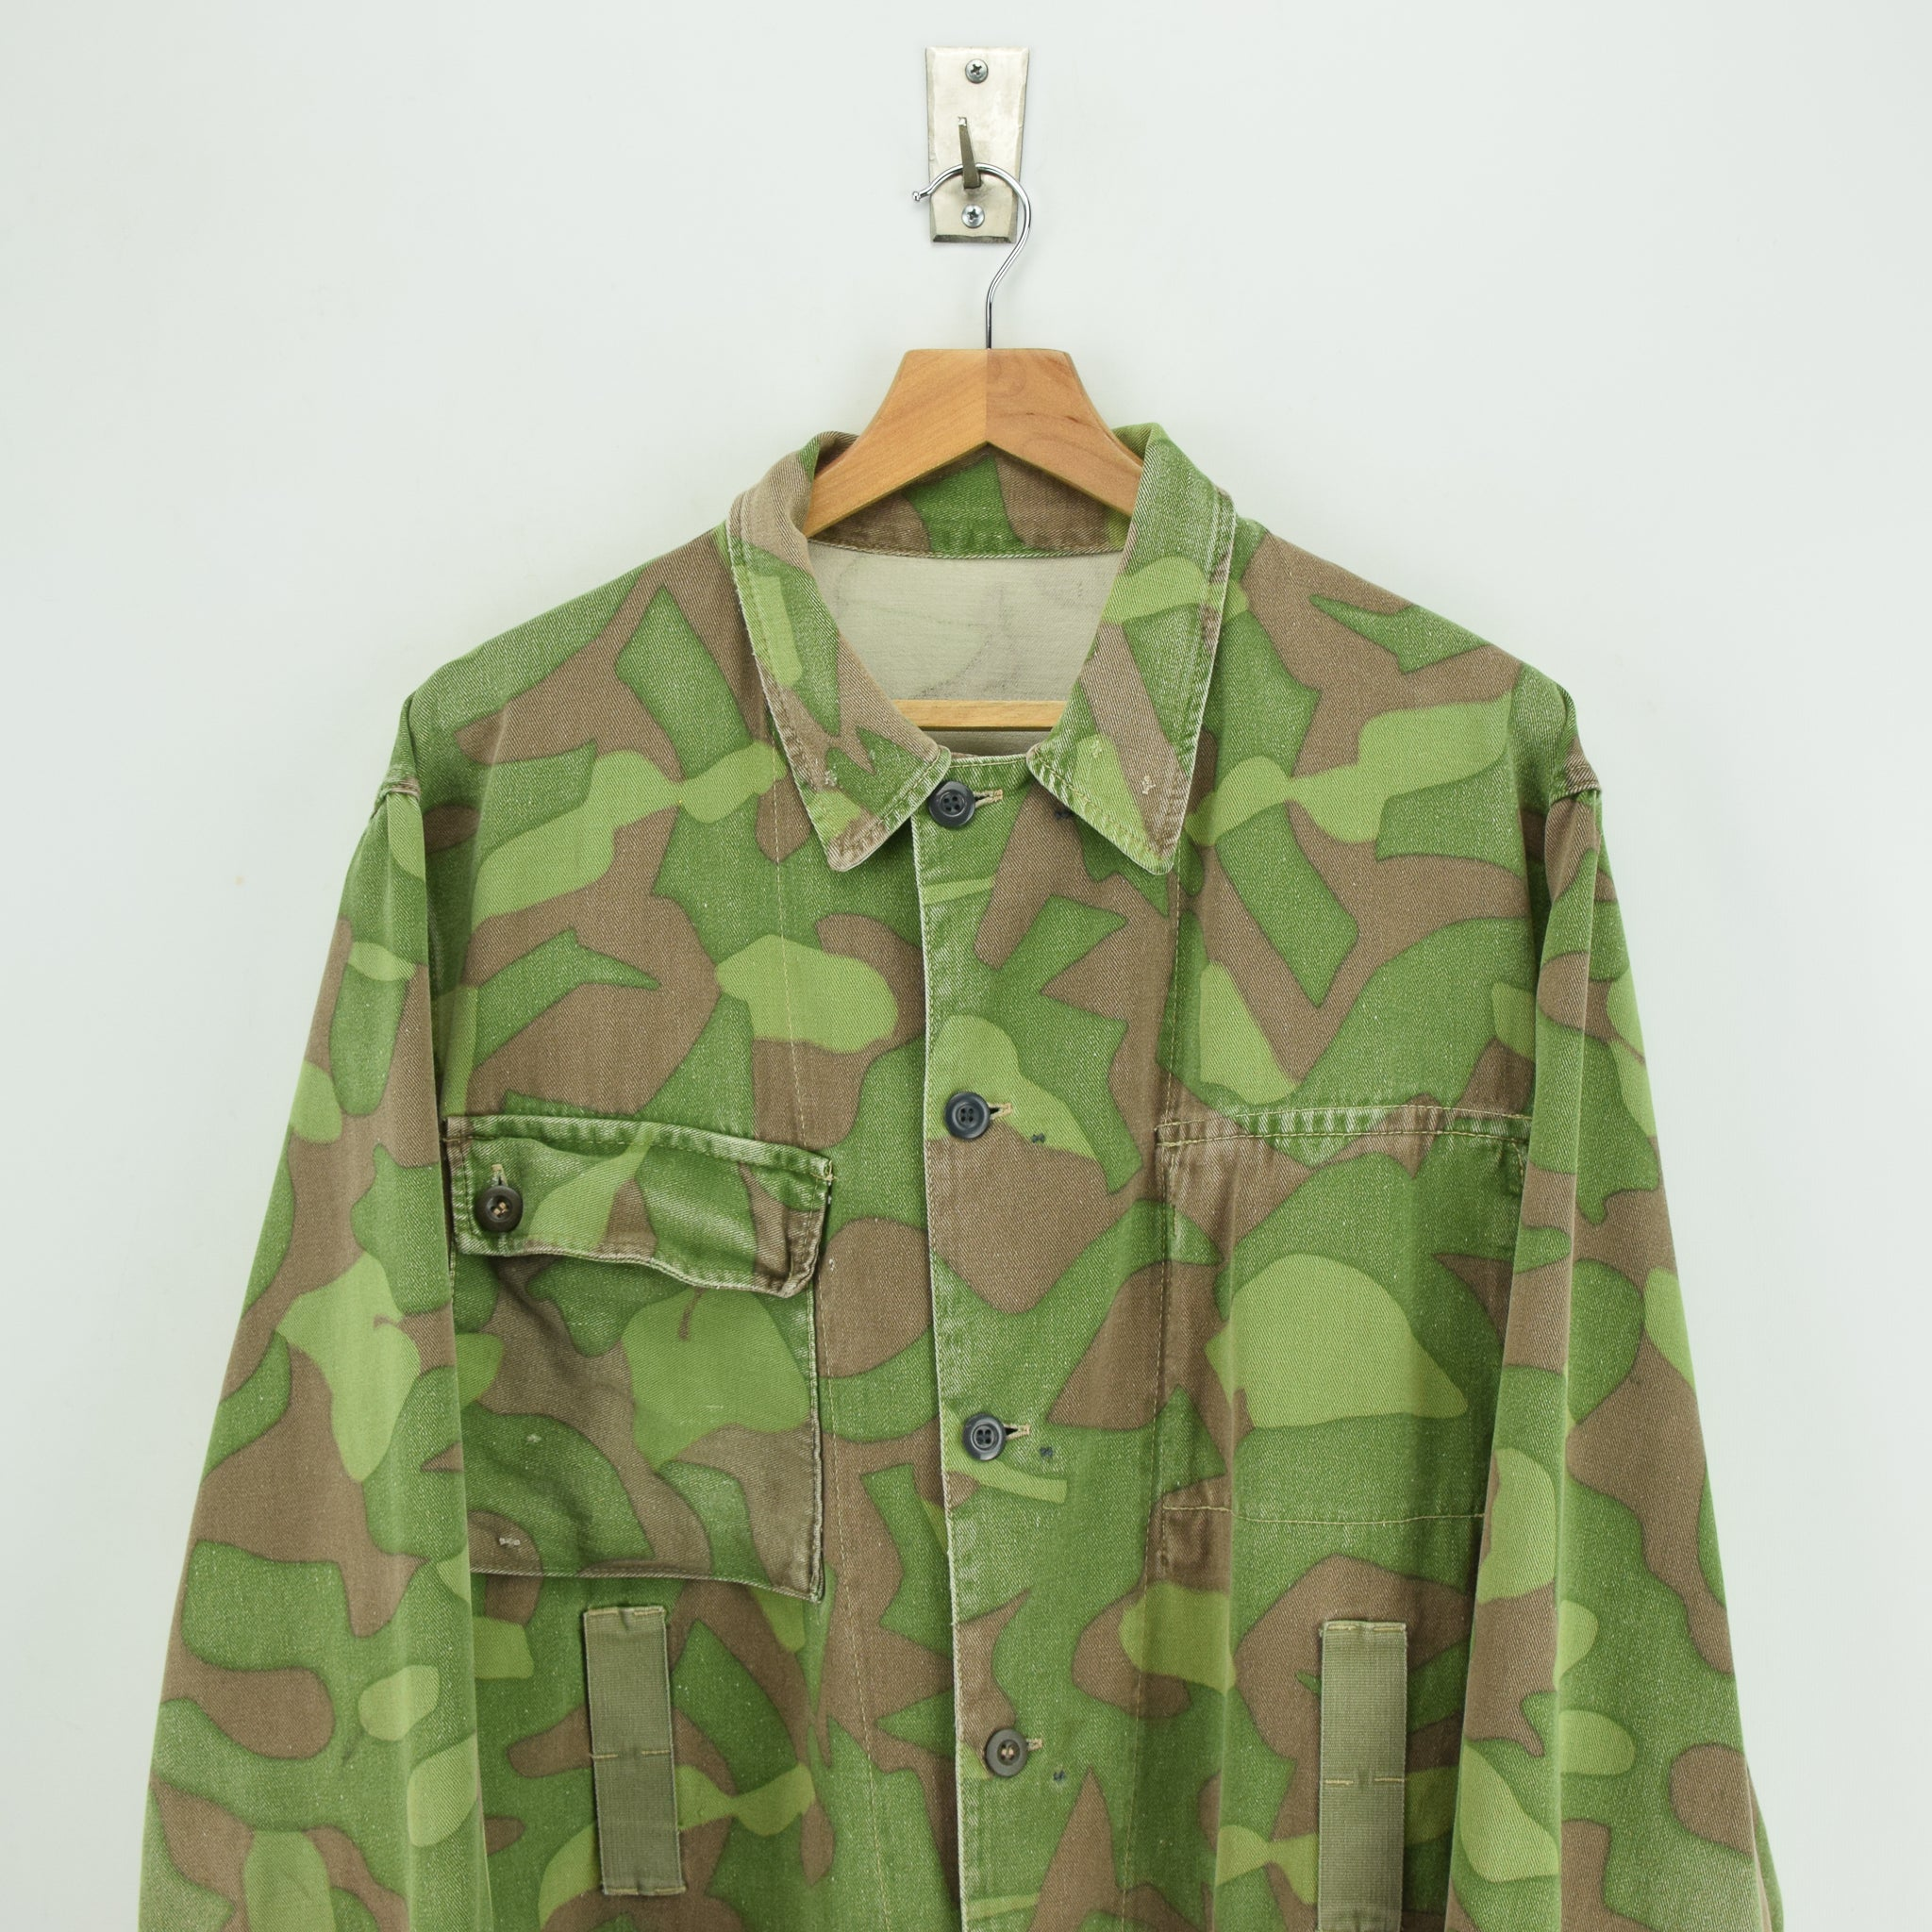 Vintage 60s Military Finnish Army Green Camo Mountain Field Jacket XL chest